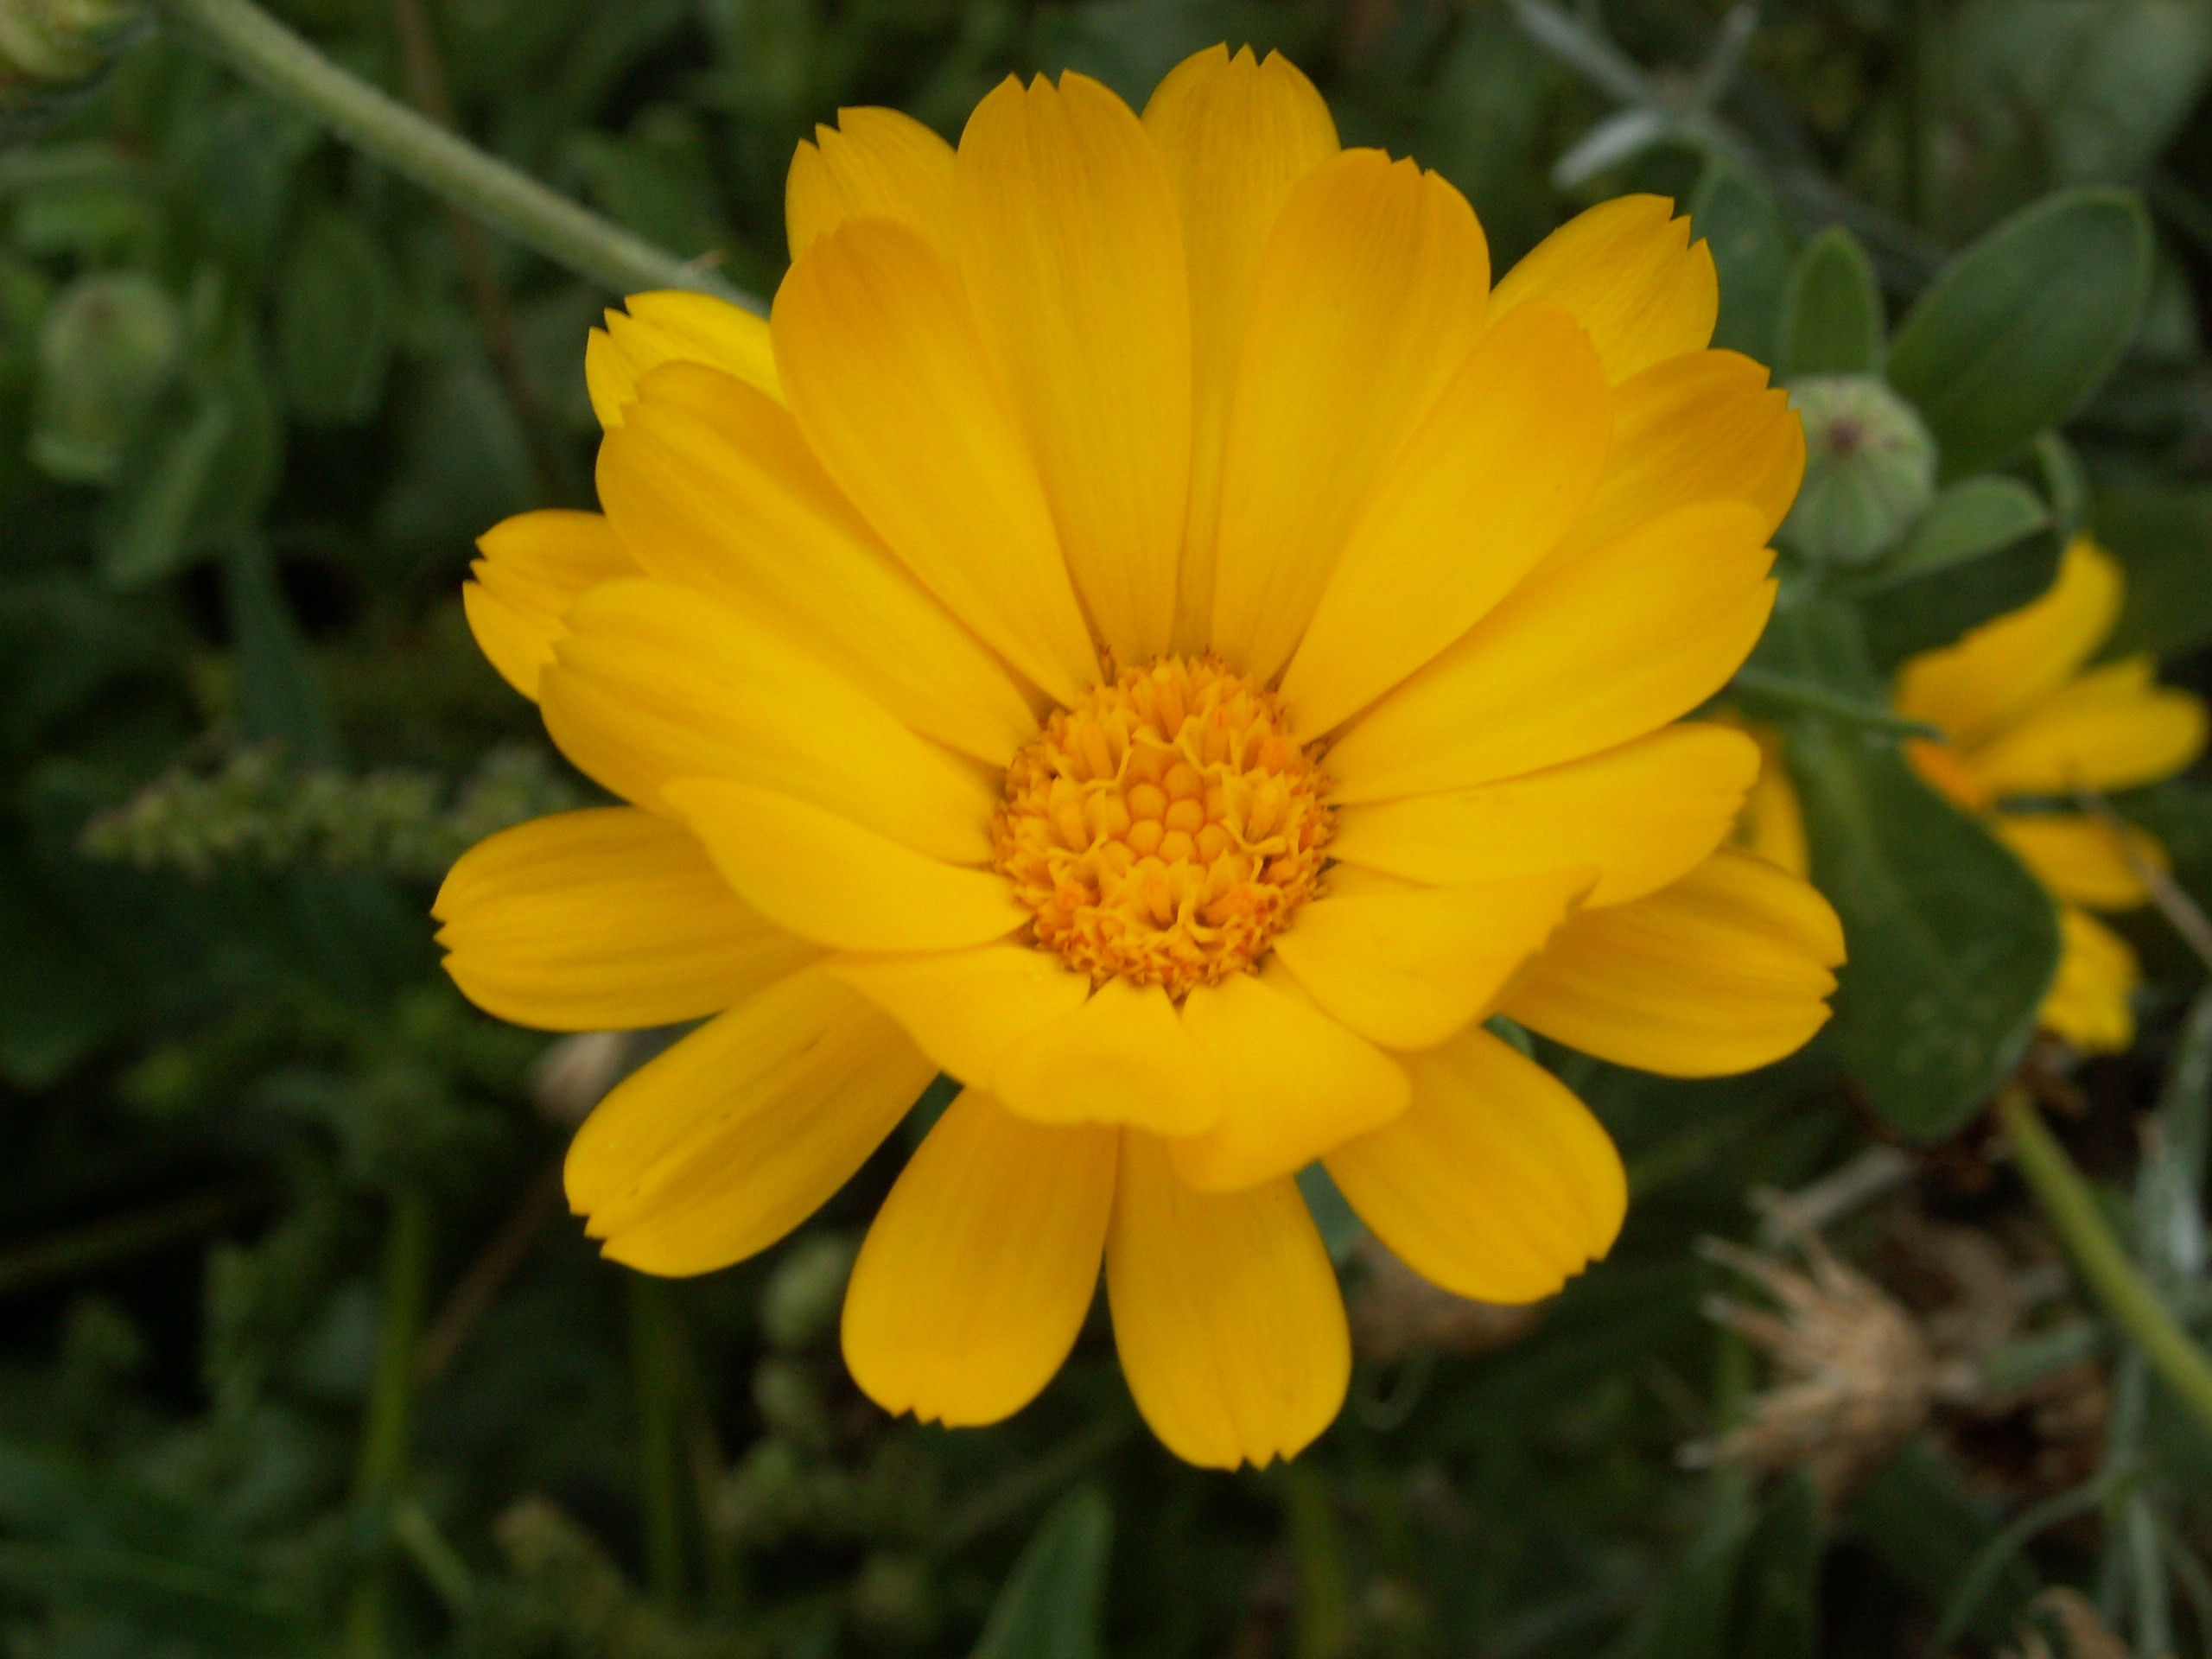 Image of marigold flower